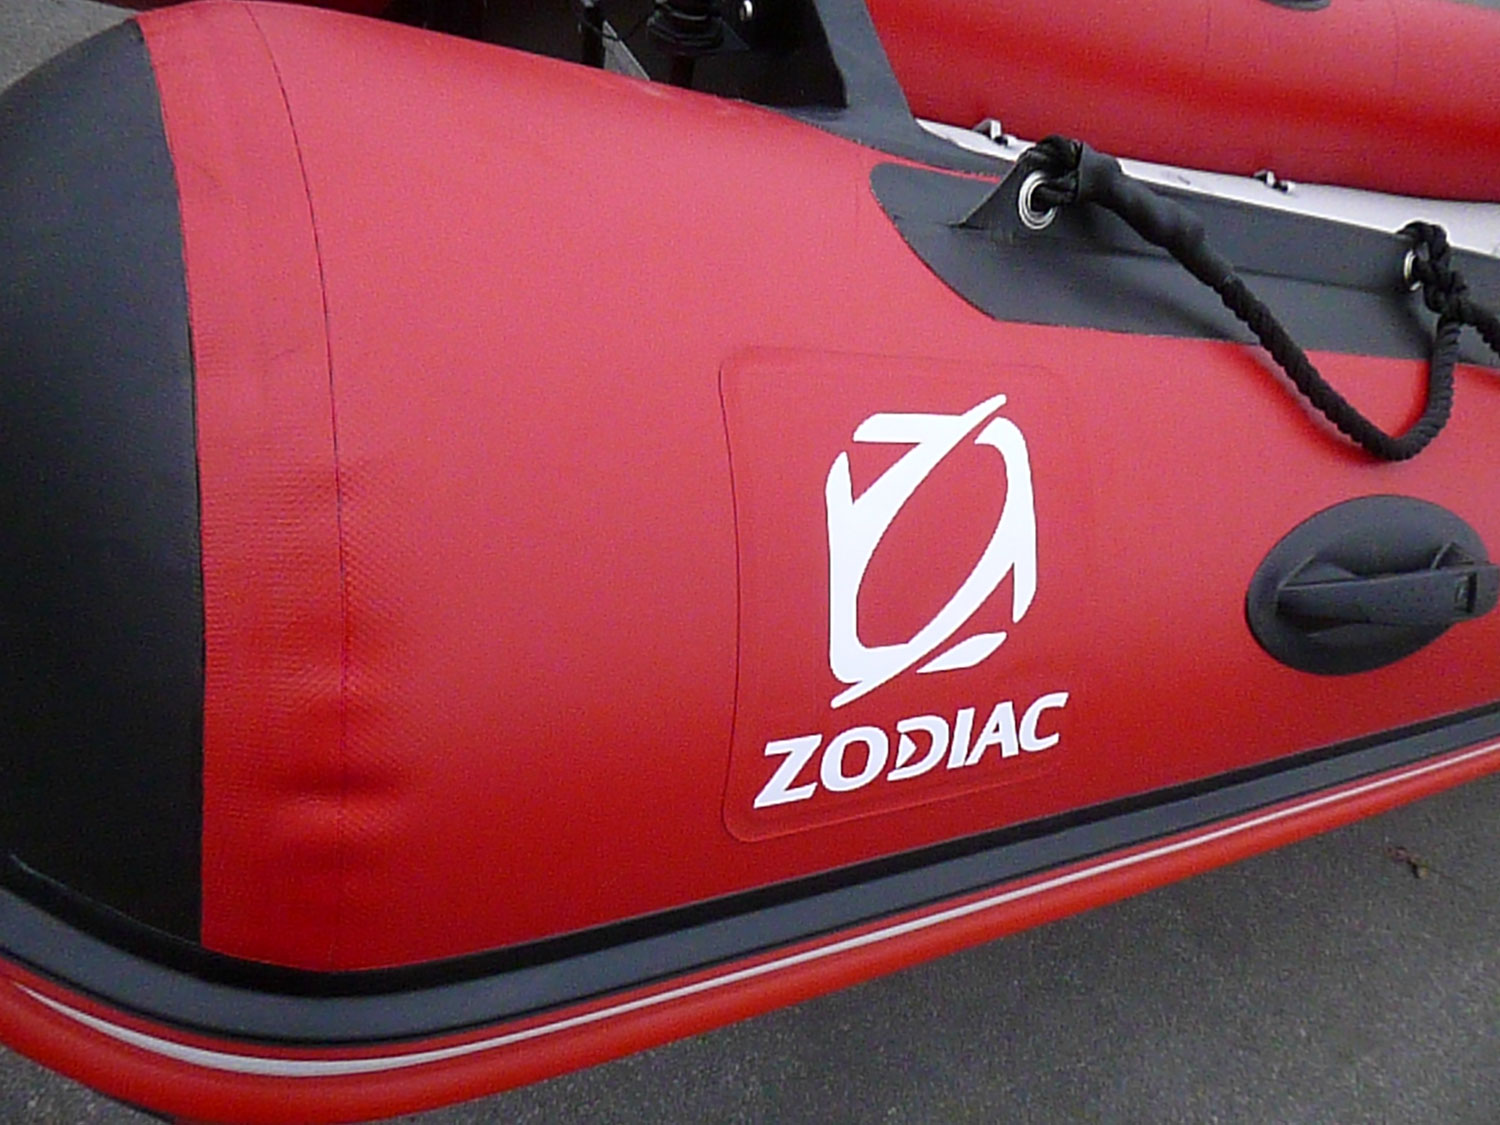 Zodiac Futura Fastroller Air Floor Inflatable Boat Www